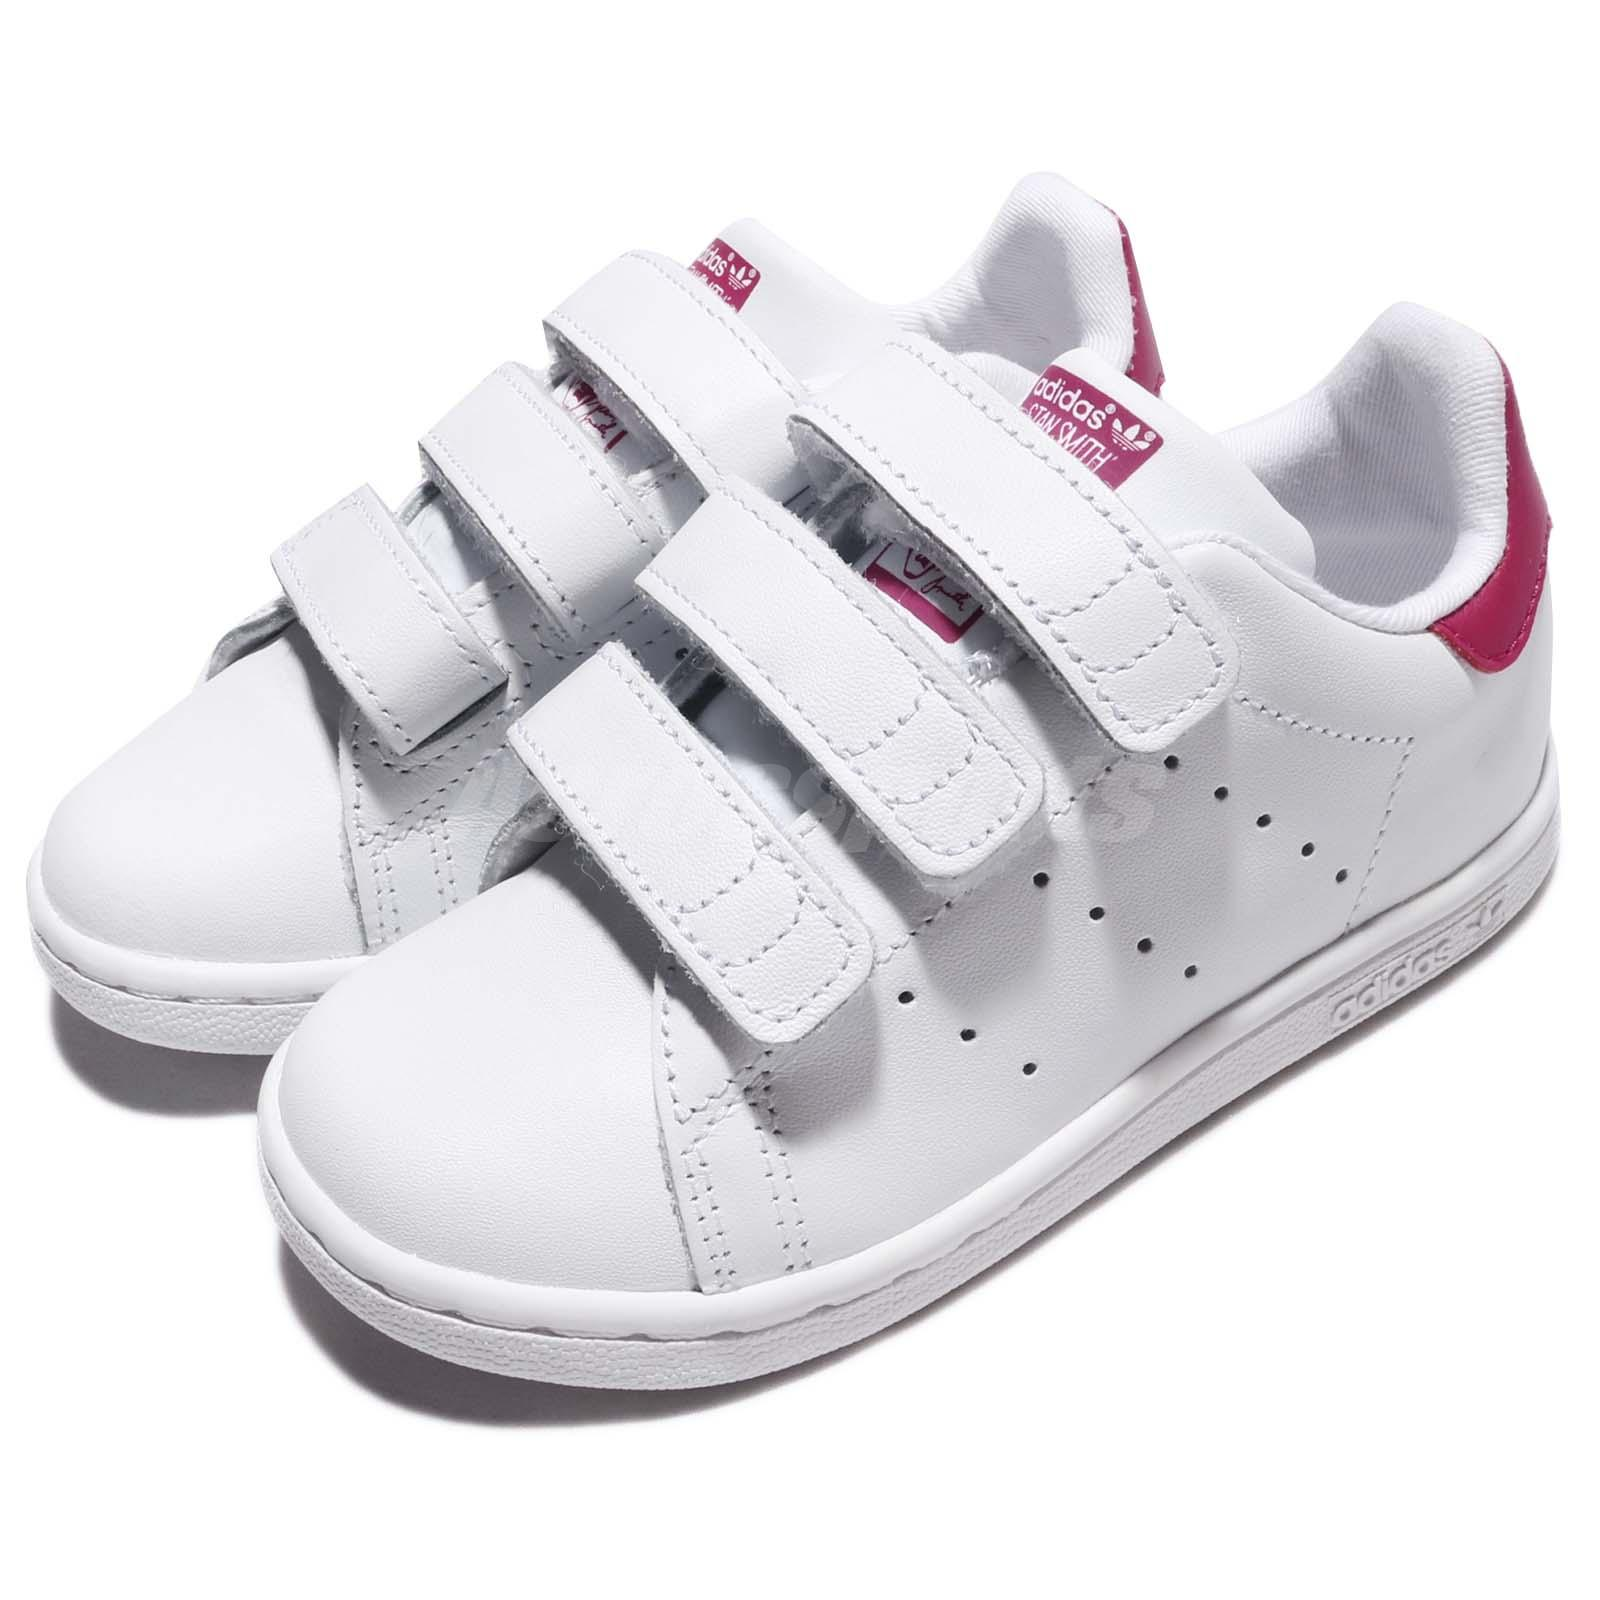 new style e8c05 d7ac1 Details about adidas Stan Smith CF I White Pink Leather Infant Toddler Baby  Shoes BZ0523